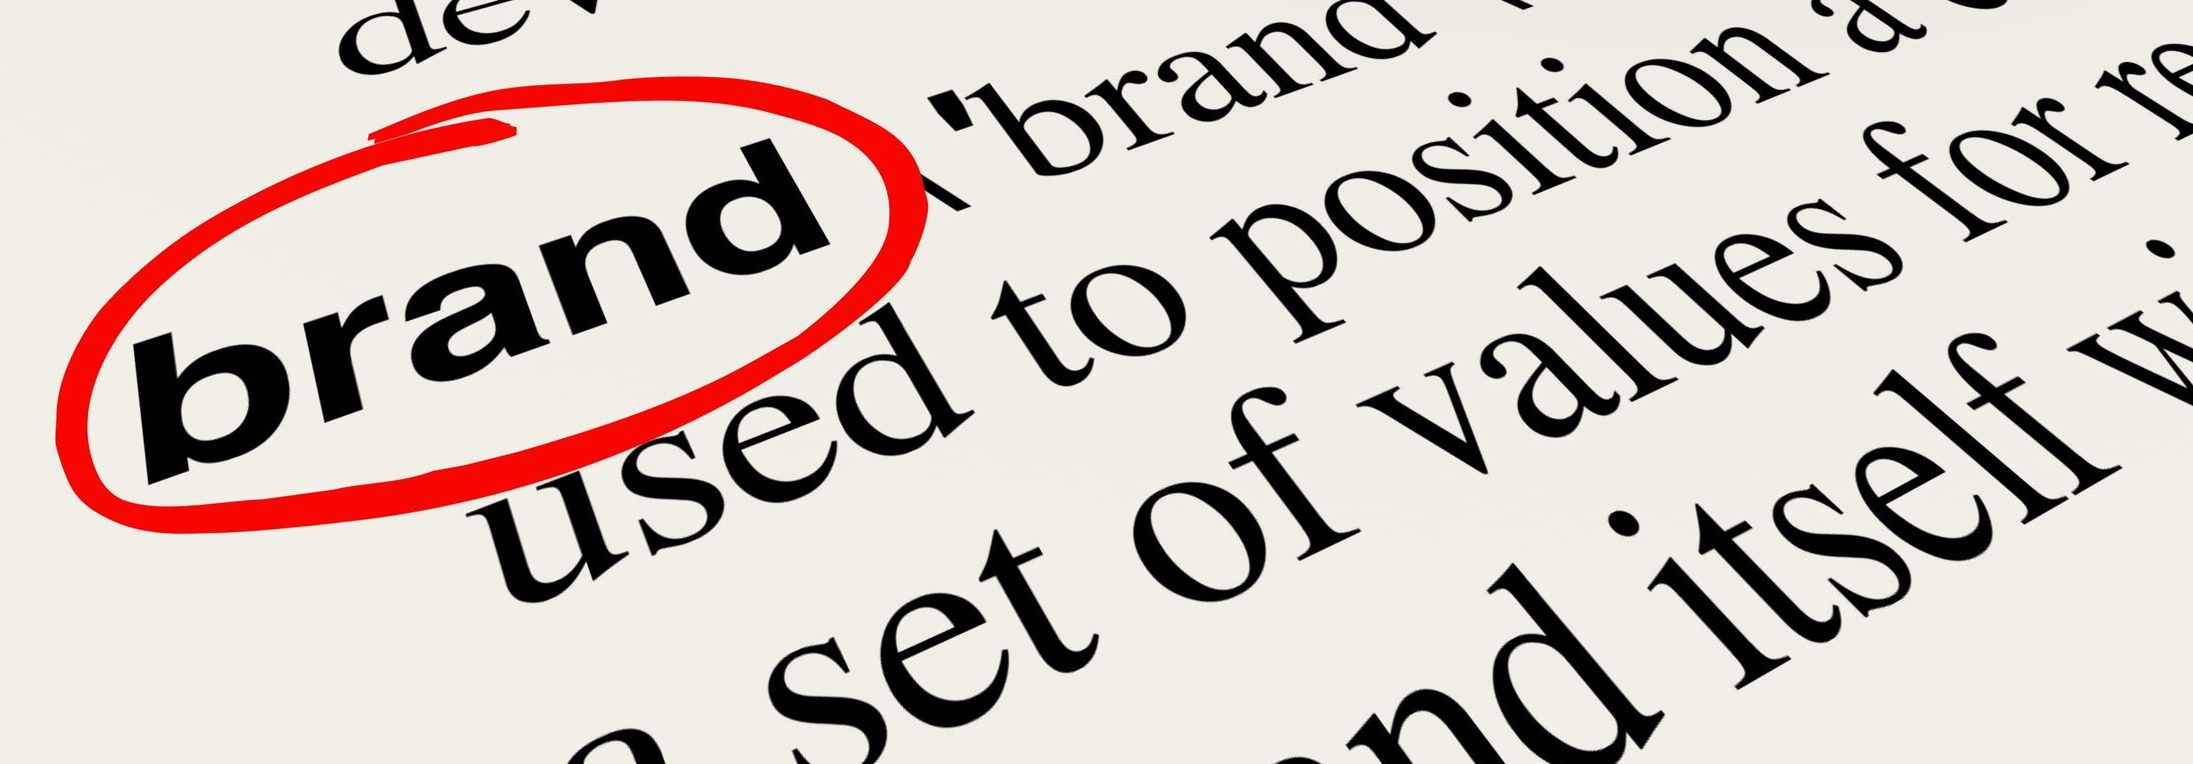 3 reasons why personal brand consulting can help your for Brand consultant